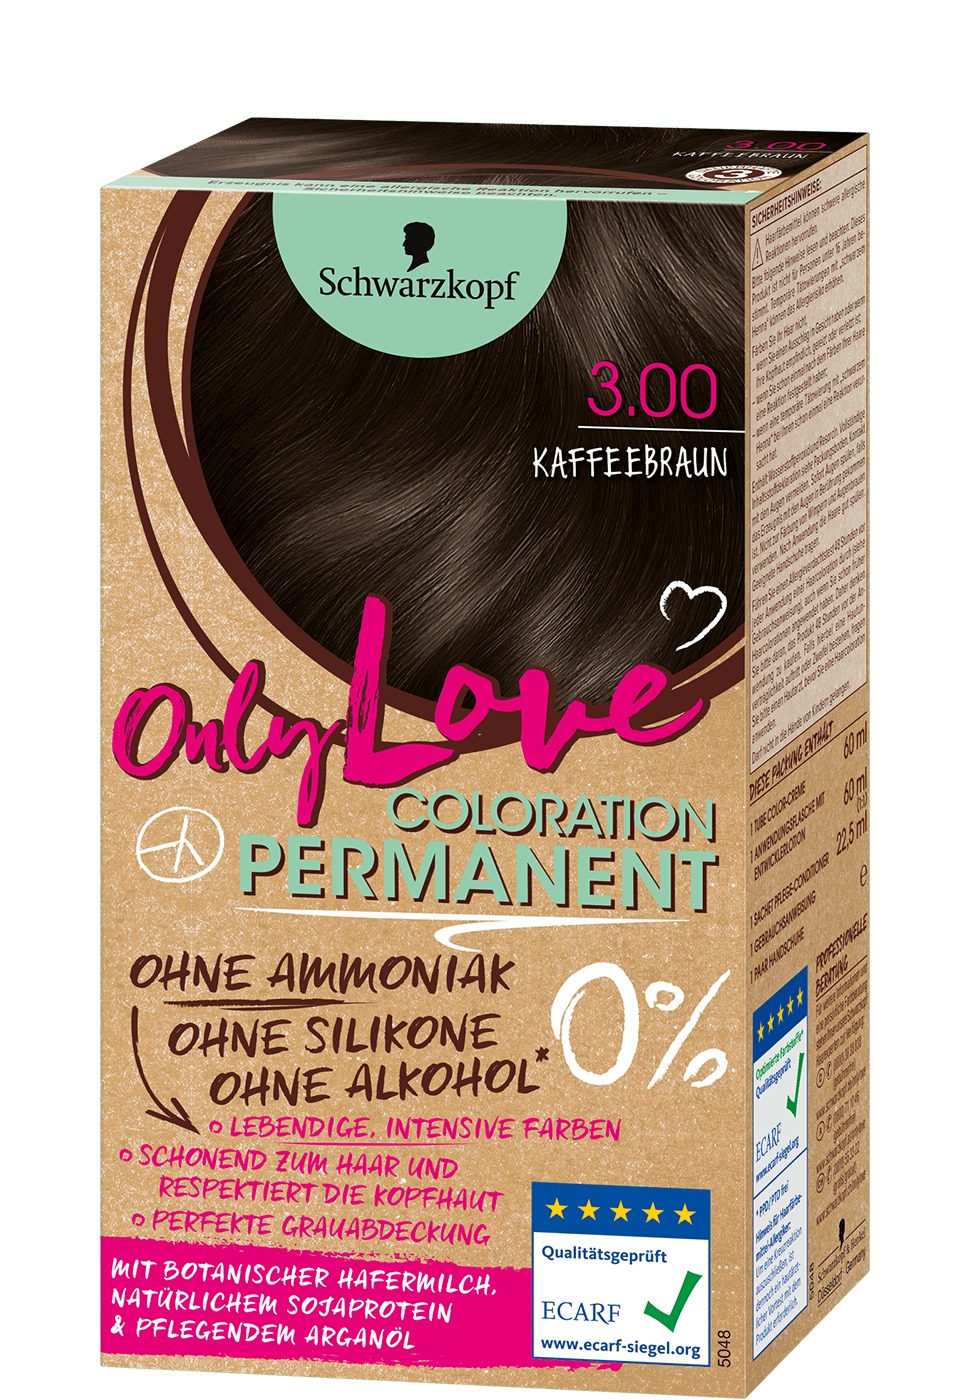 only_love_de_coloration_permanent_3_00_kaffeebraun_970x1400